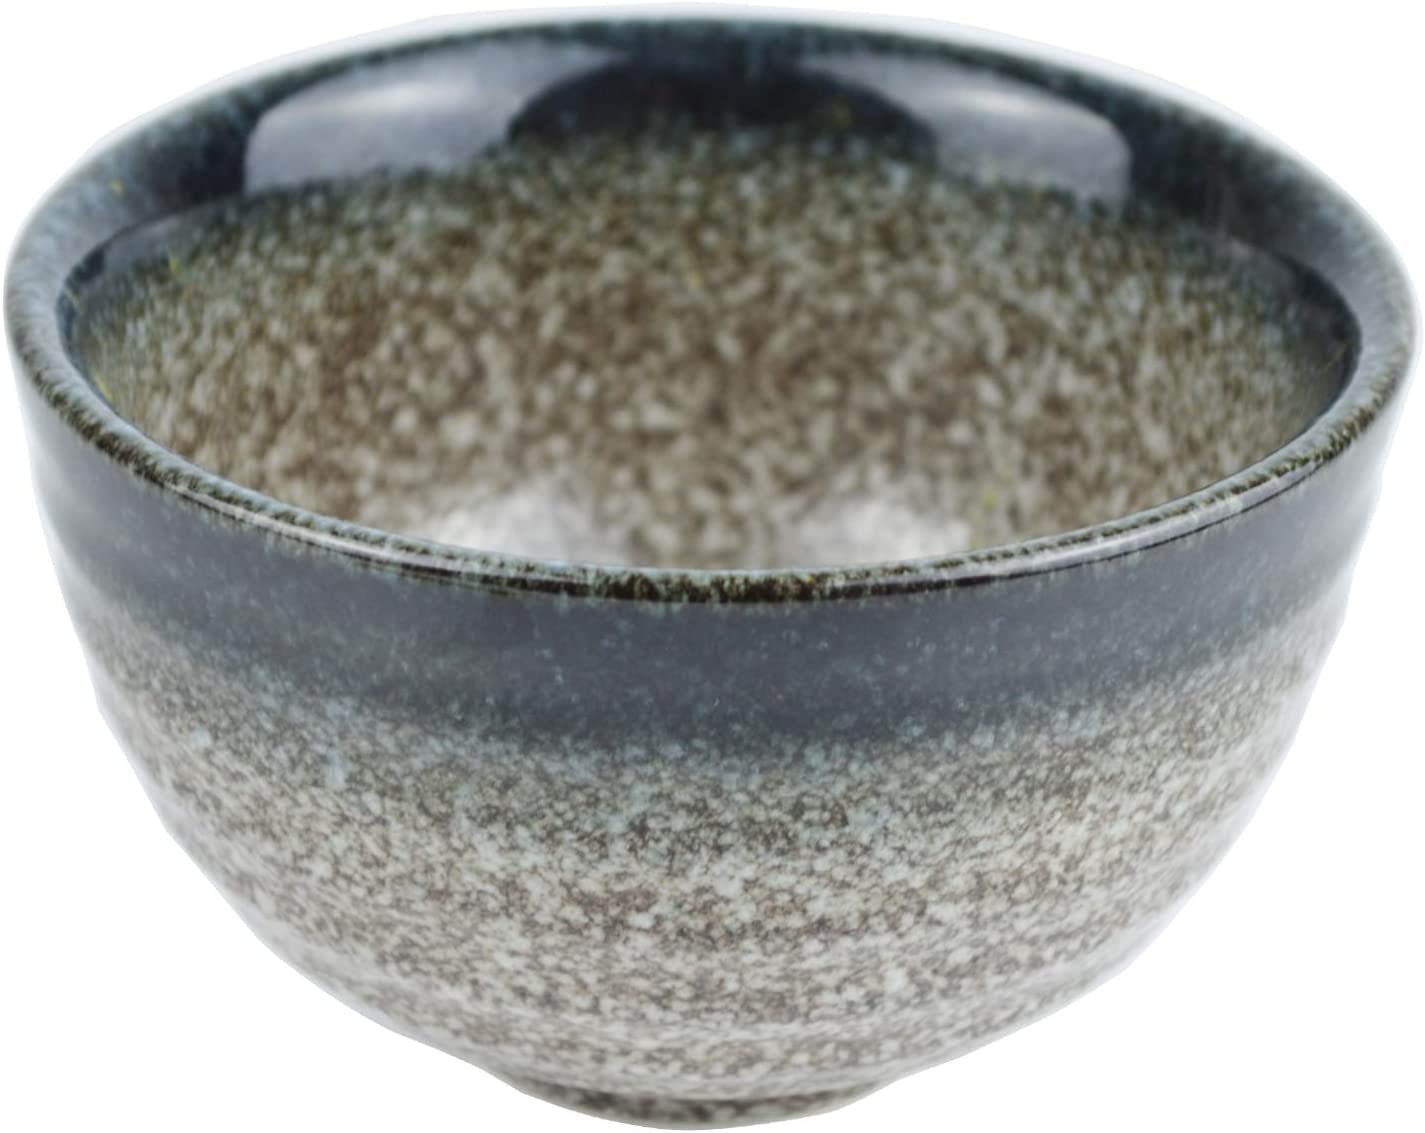 4.5 Traditional Matcha Tea Bowl Handcrafted for Matcha Tea Cup Ceremony and Everyday Use